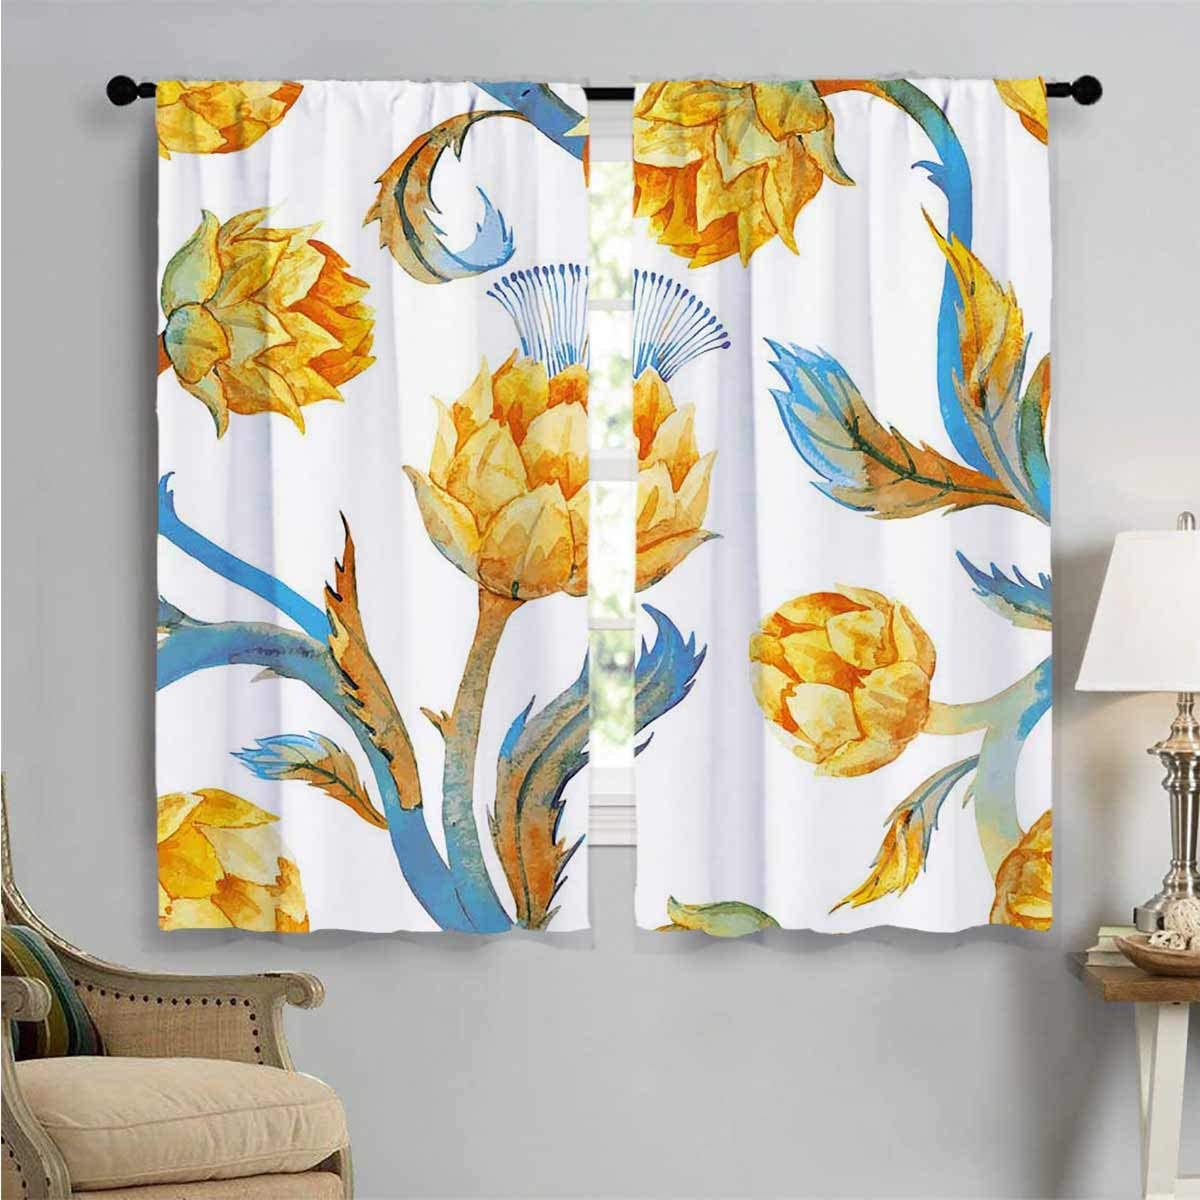 Blackout Draperies for Bedroom Watercolor quality assurance Living Indefinitely Ro Vegetables